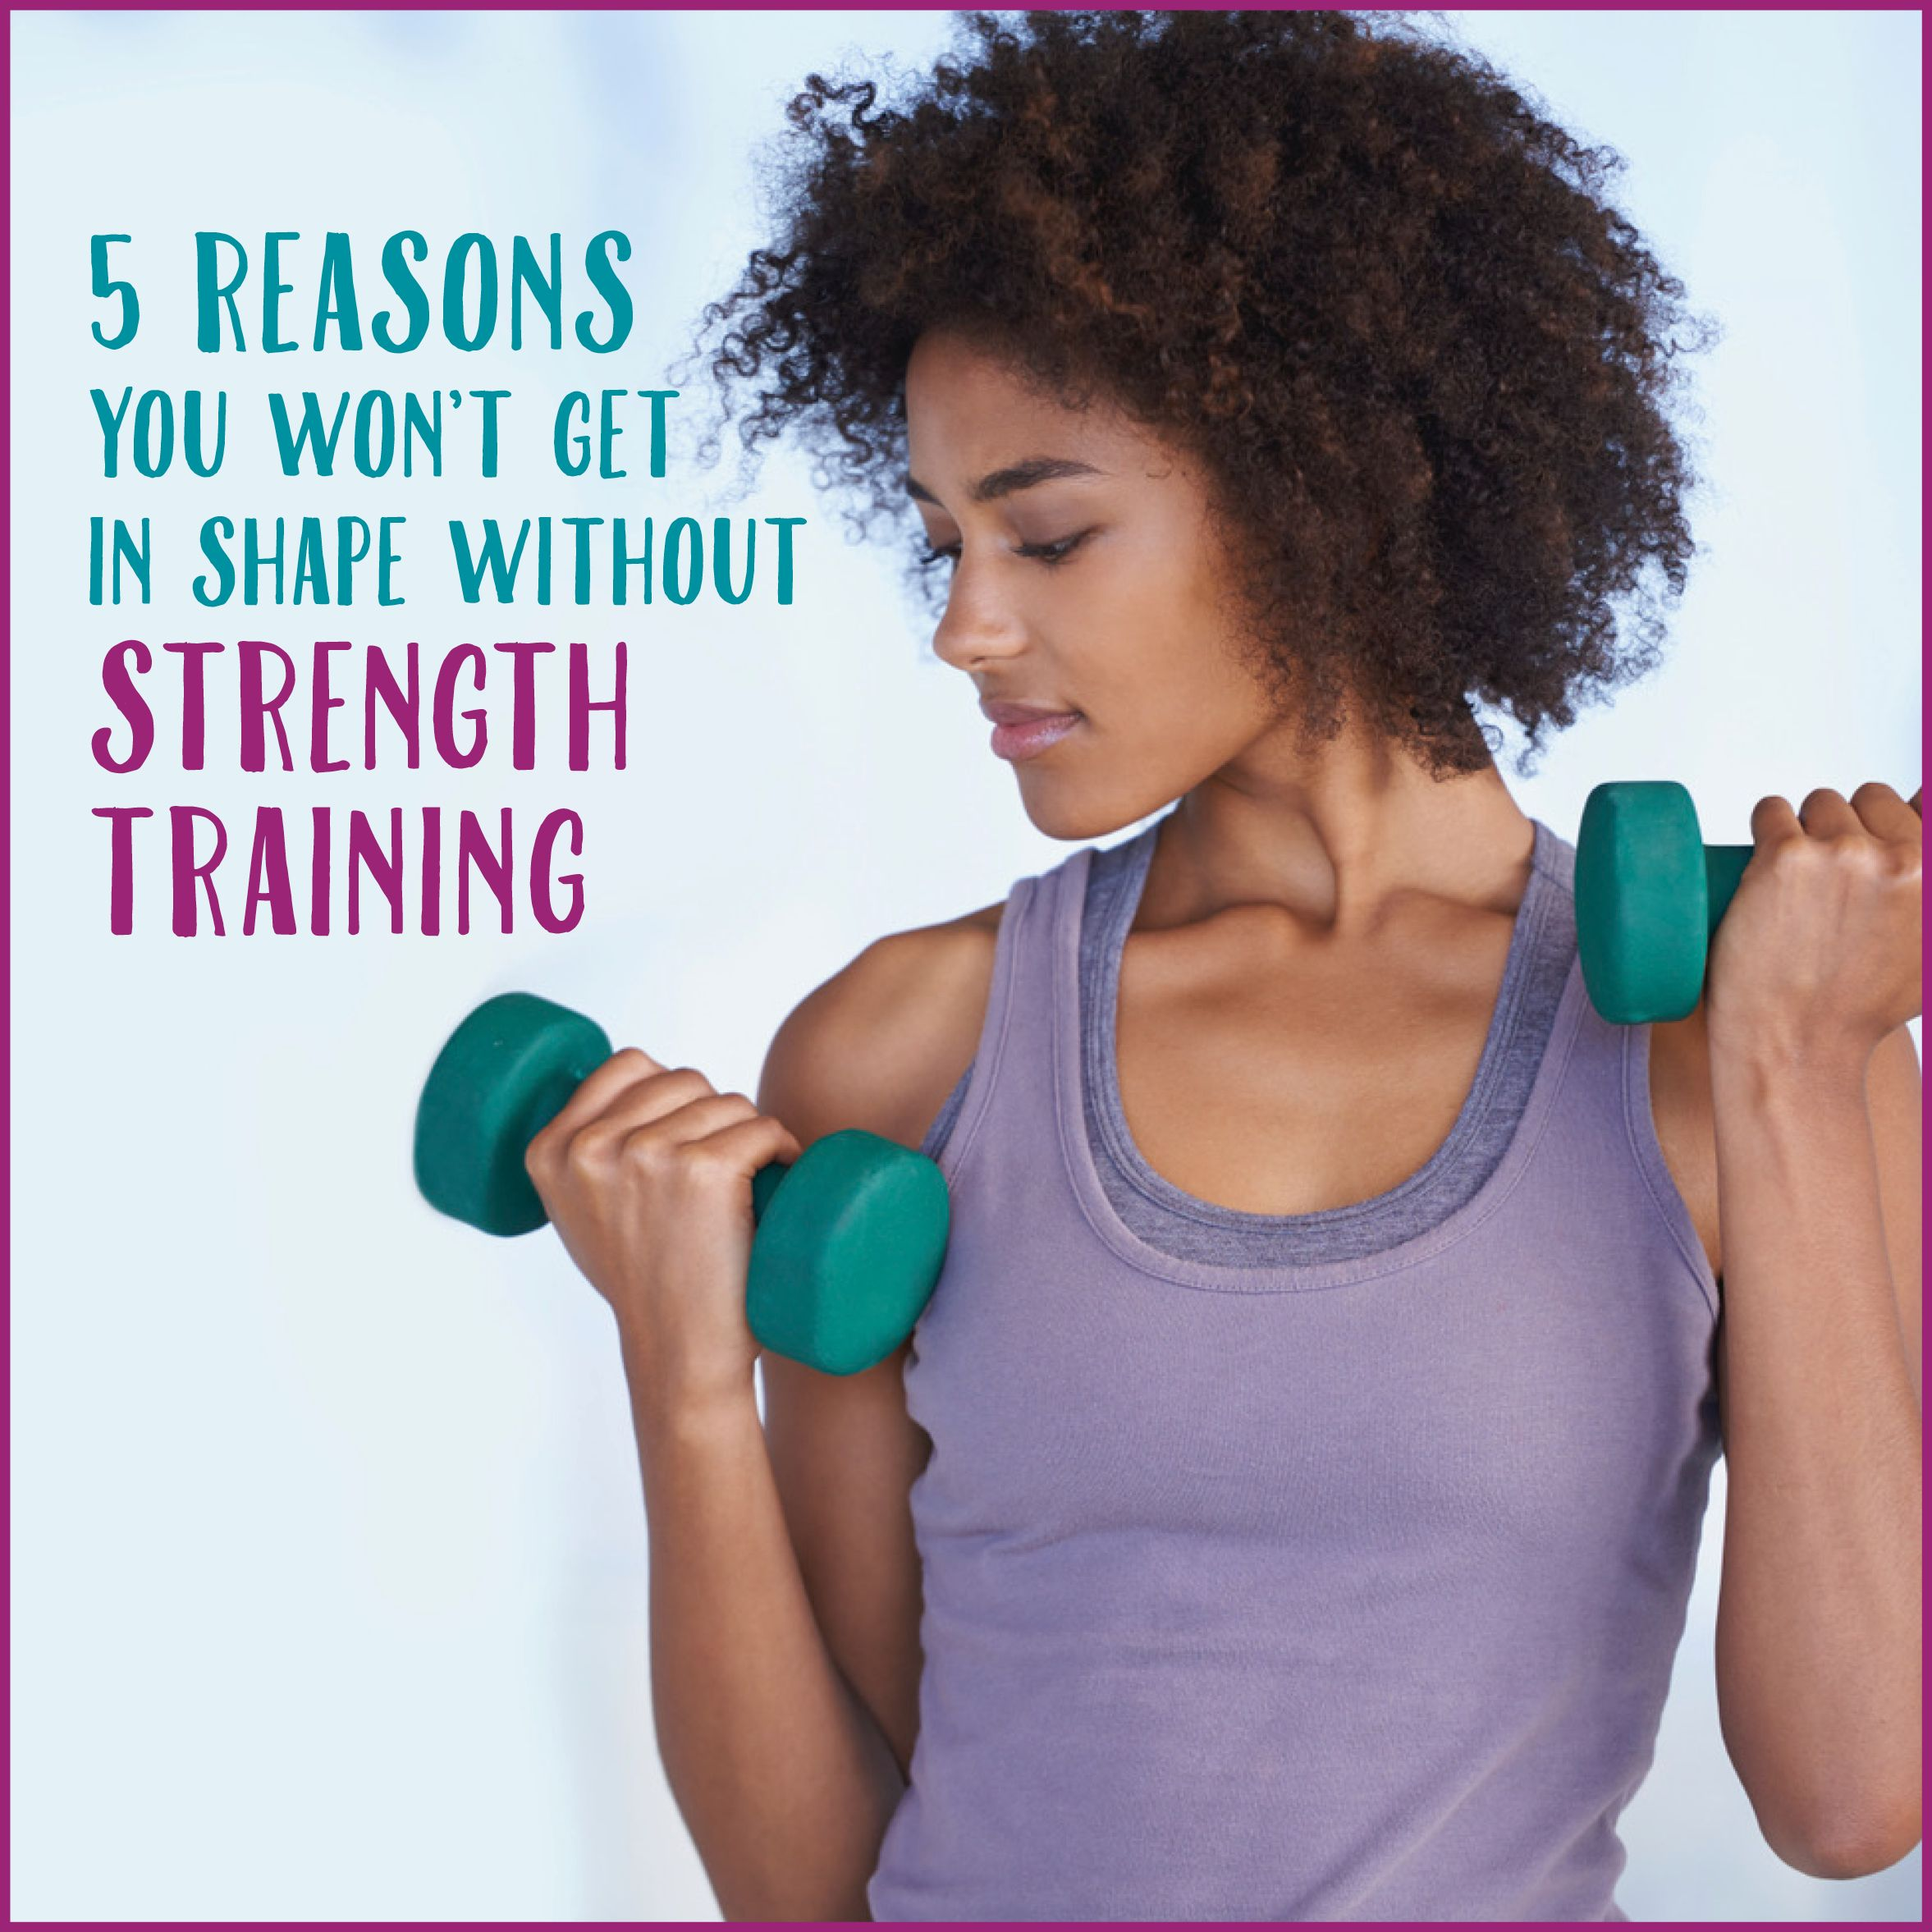 5 Reasons You Won't Get In Shape Without Strength